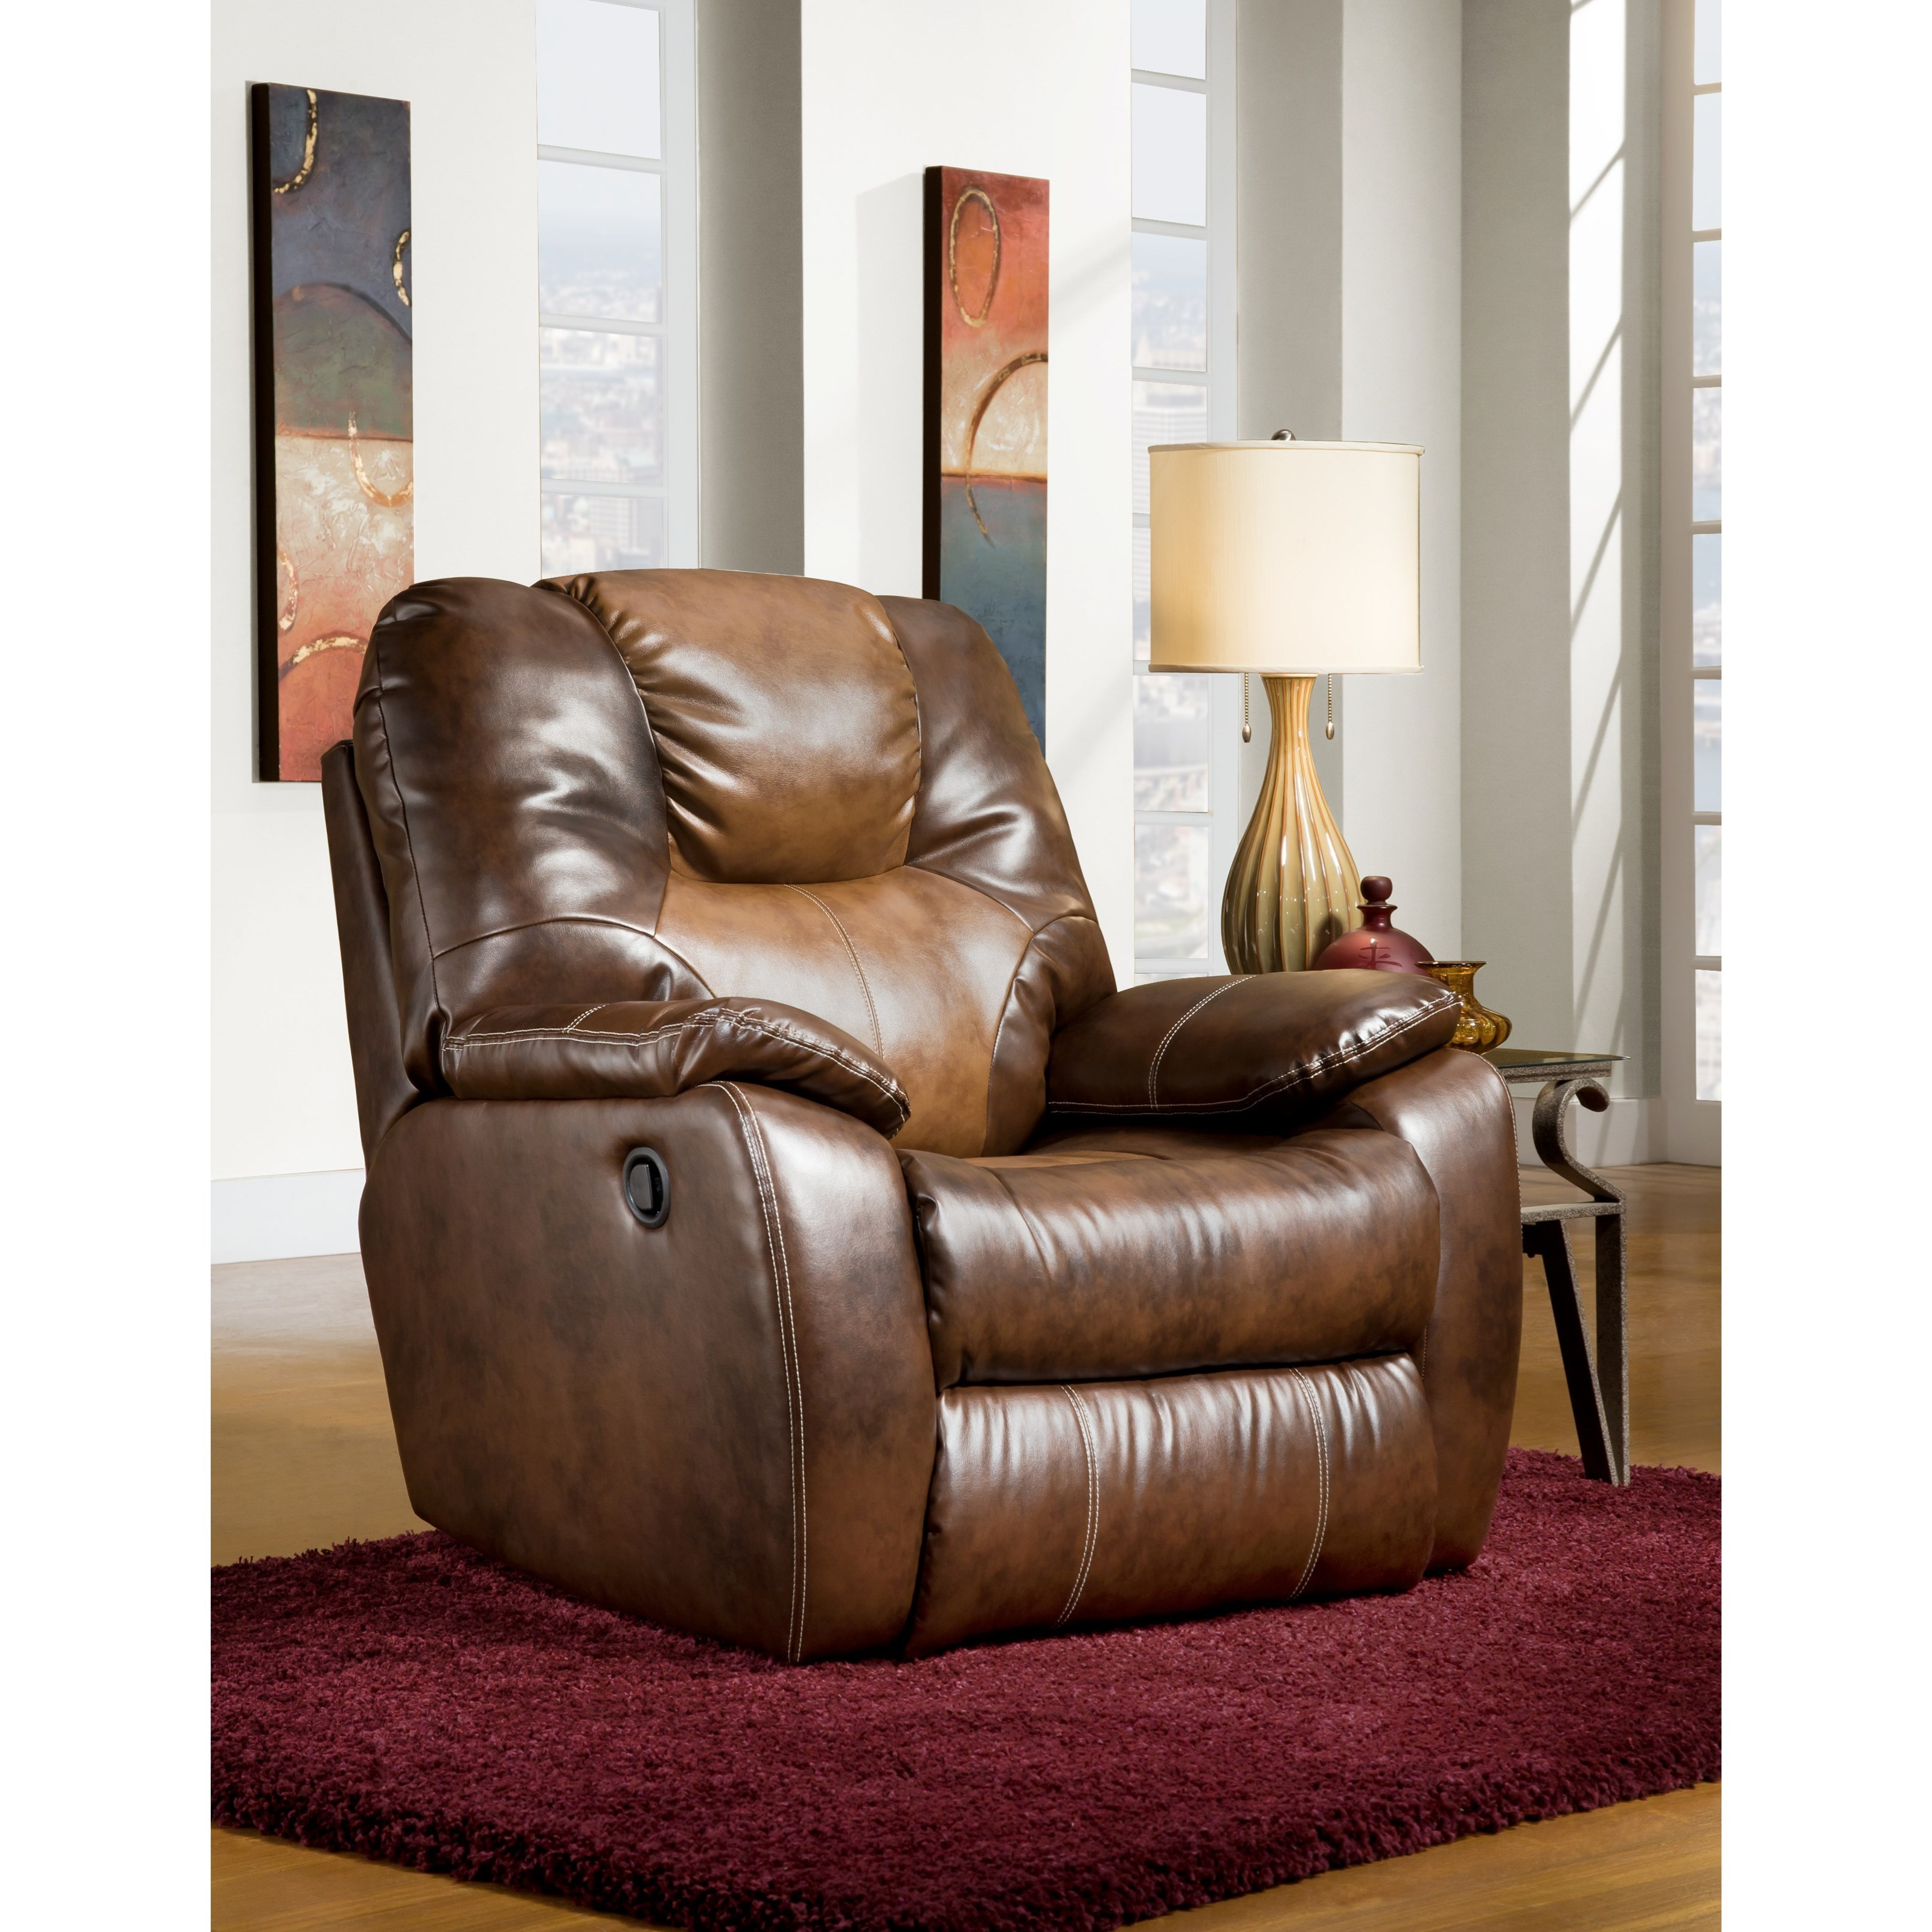 Avalon Swivel Rocker Recliner by Southern Motion at Sparks HomeStore